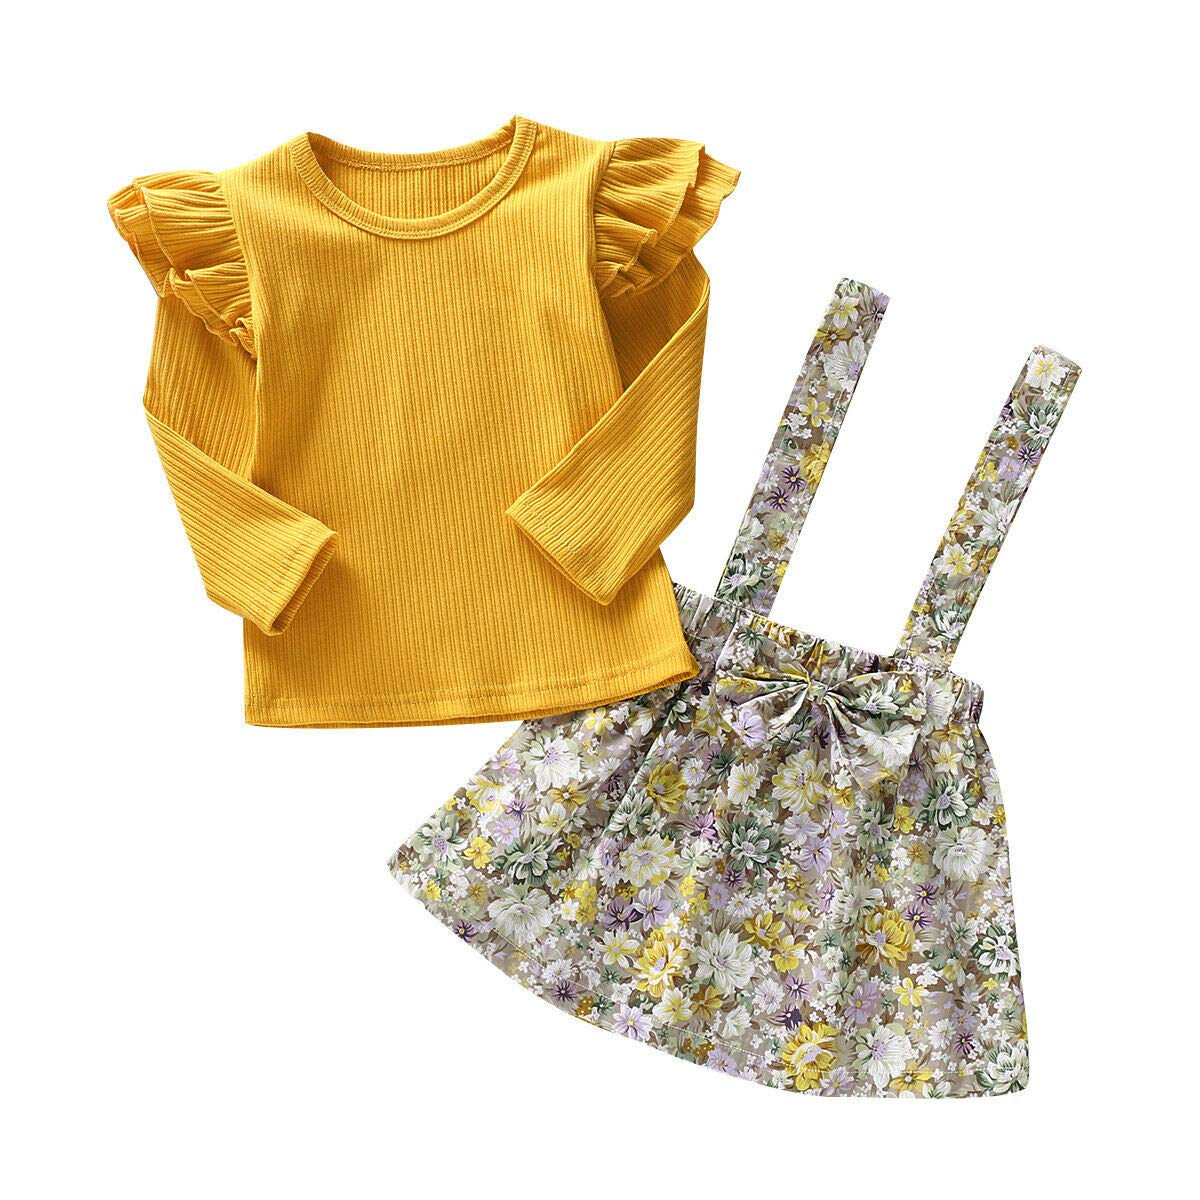 Toddler Girls Outfits 2PCS Baby Romper Clothes Set Little Girls Floral Jumpsuit Rompers Strap Skirt Outfits